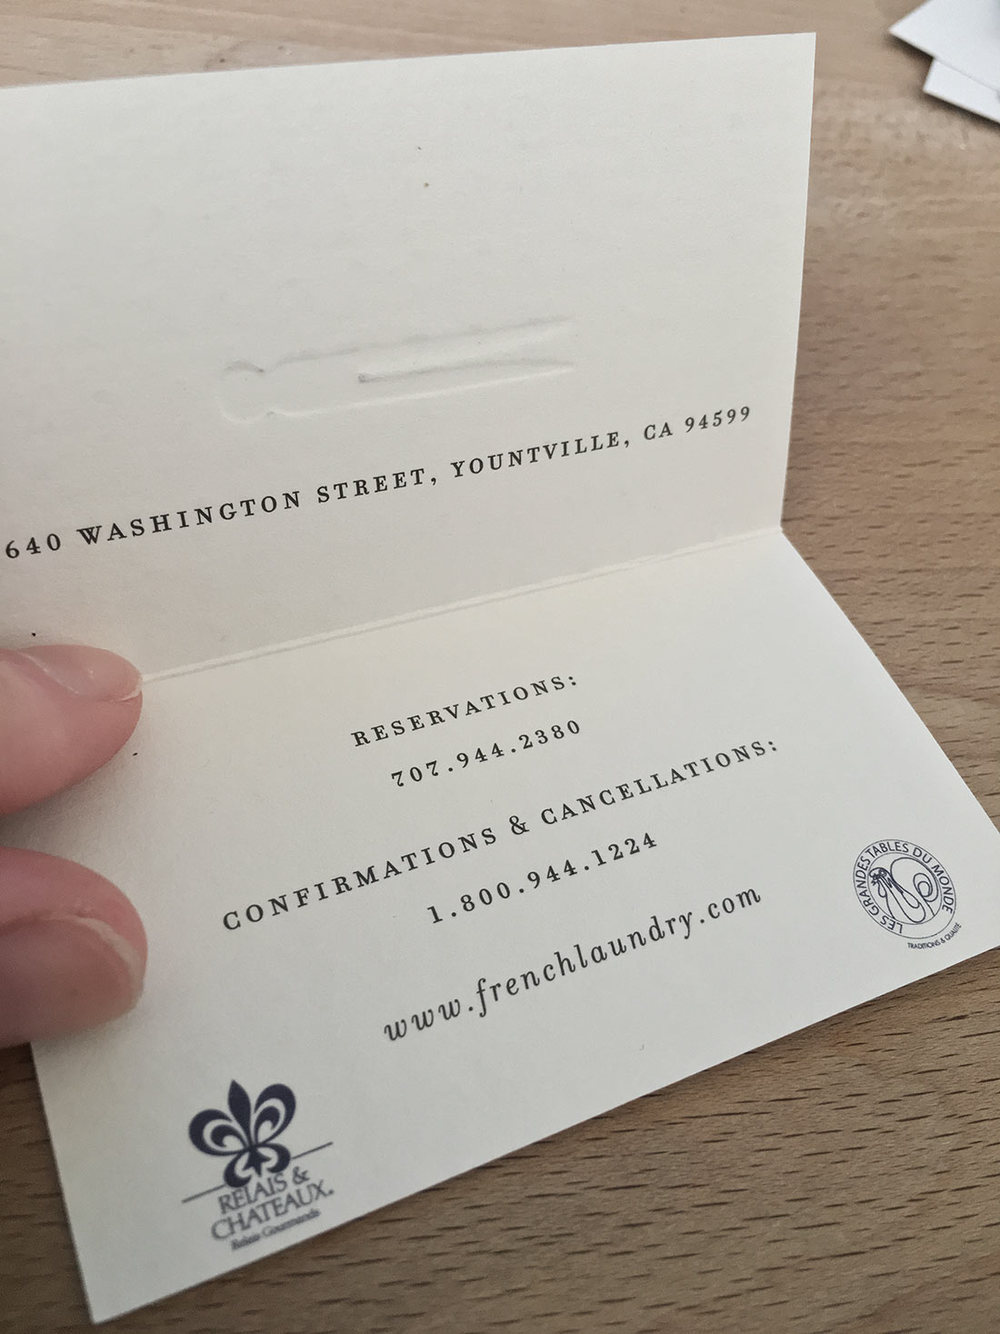 7 awesome business cards from some of the best restaurants in the ...